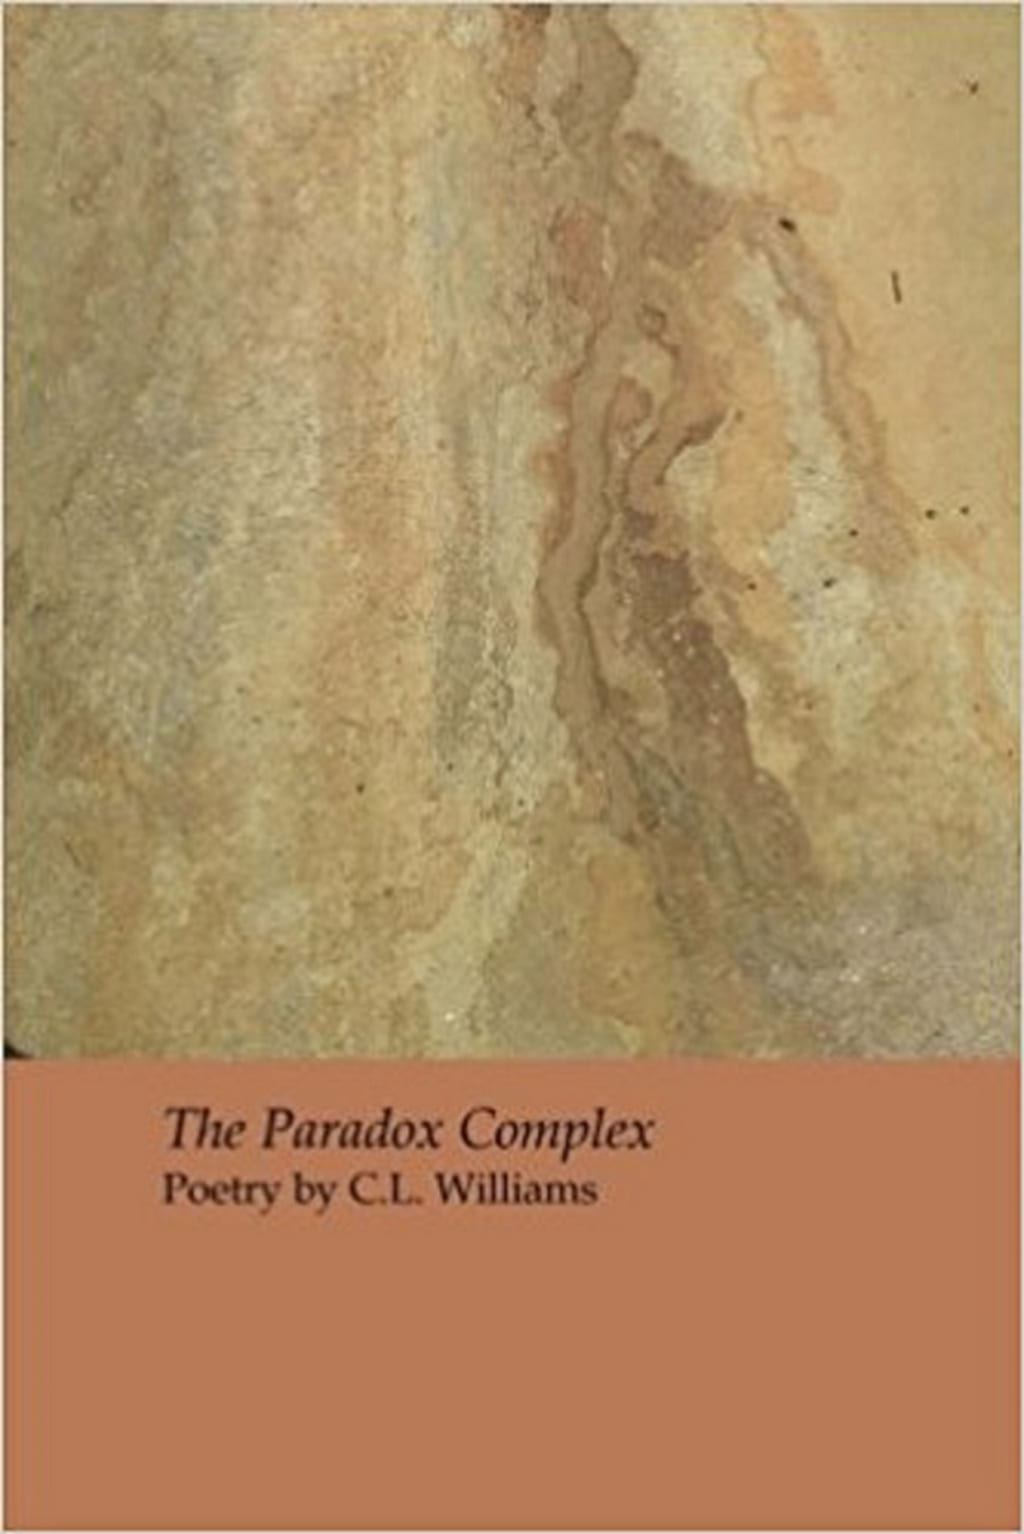 In Review: 'The Paradox Complex' by C. L. Williams